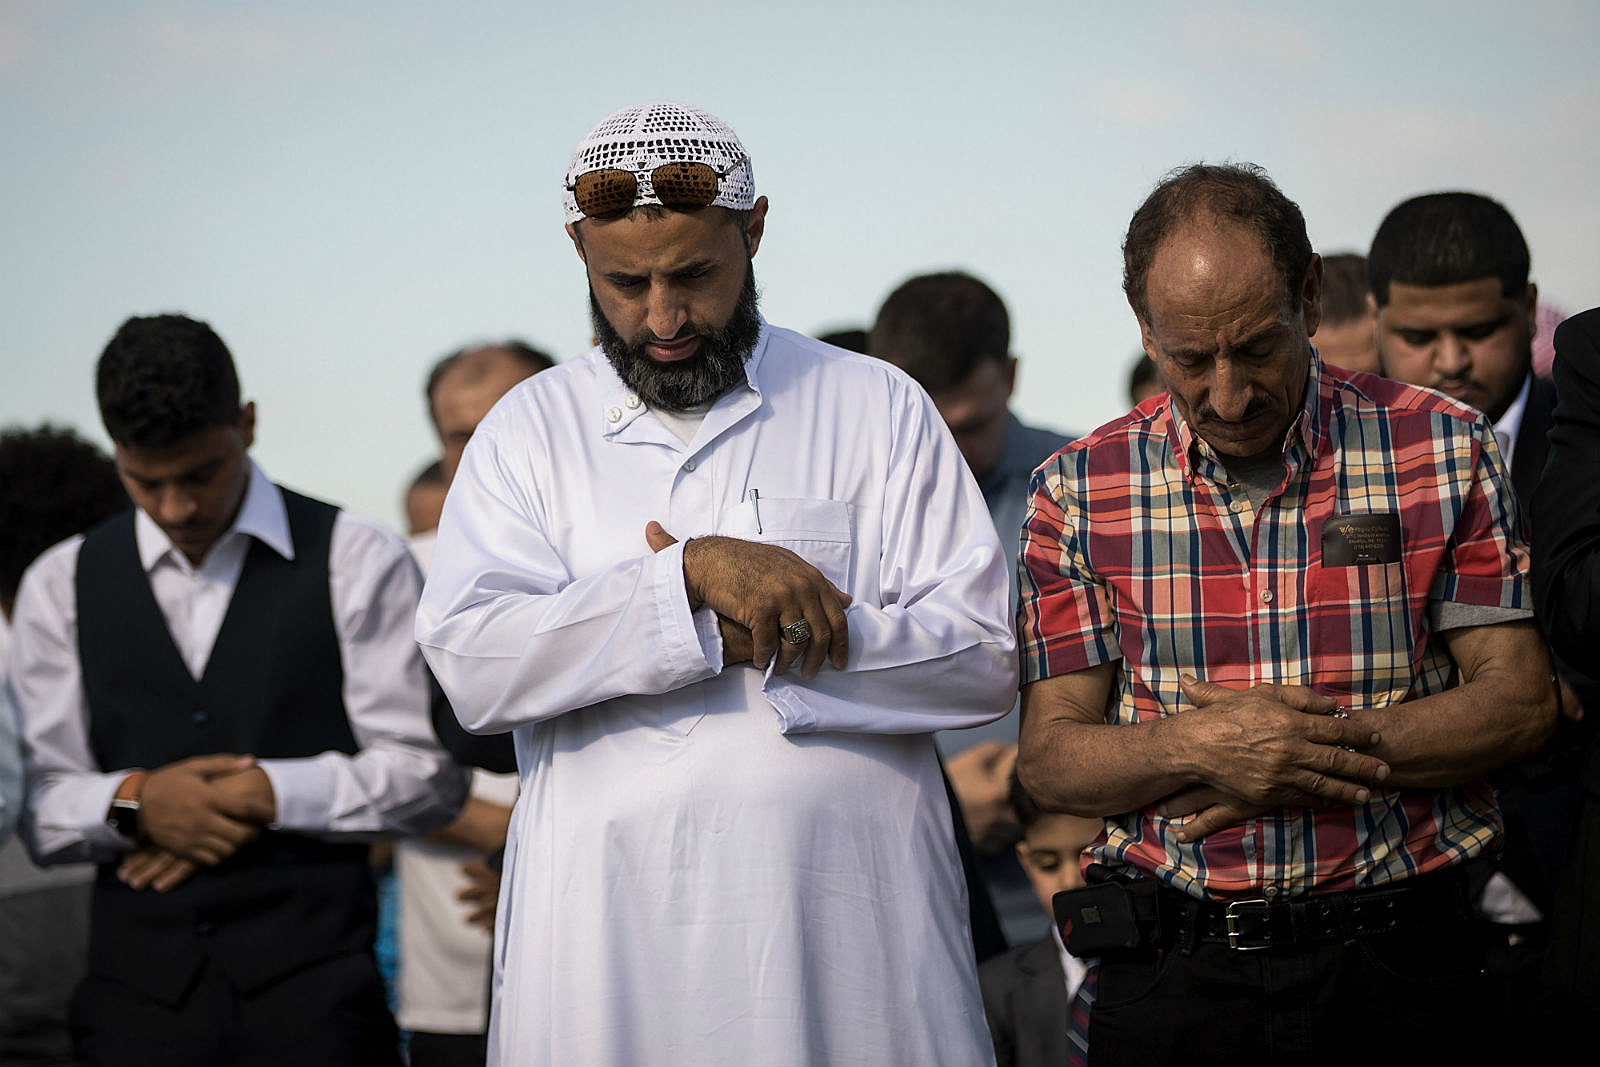 Muslims_Drew Angerer/Getty